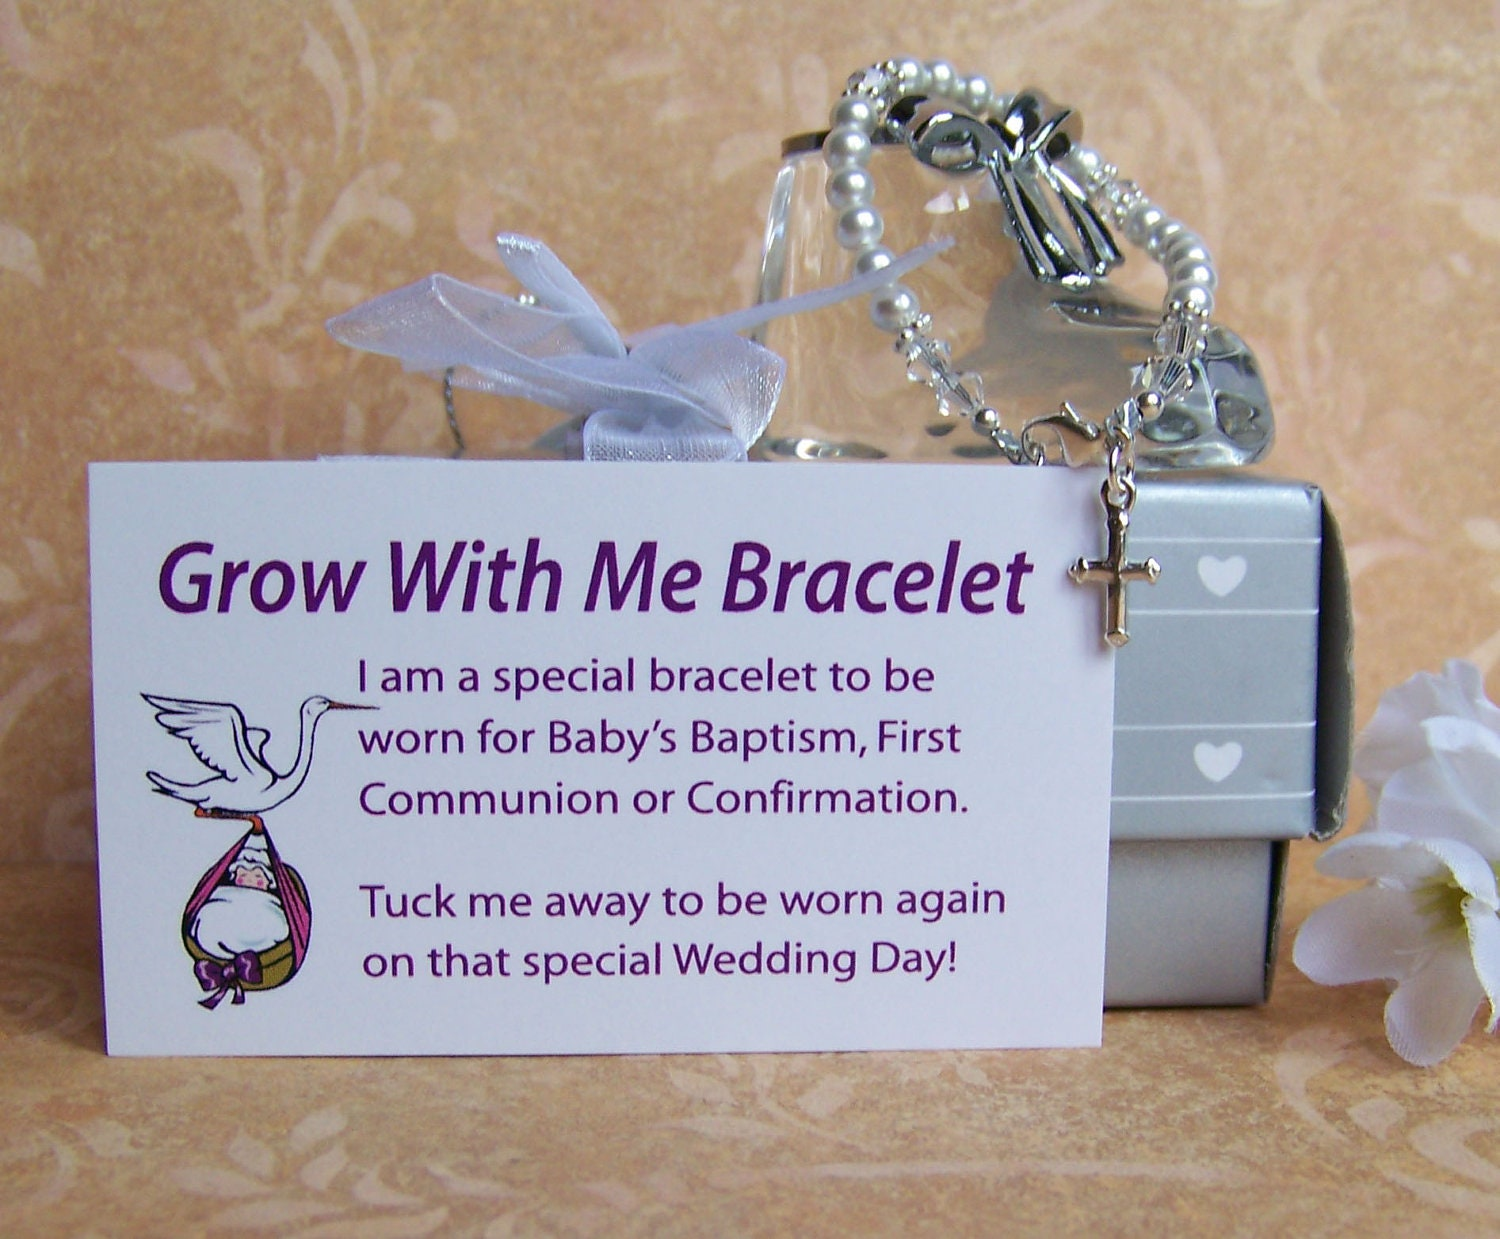 Pamper Me Gift Ideas: Baby Girl Baptism Bracelet Grow With Me By Luckycharm5286